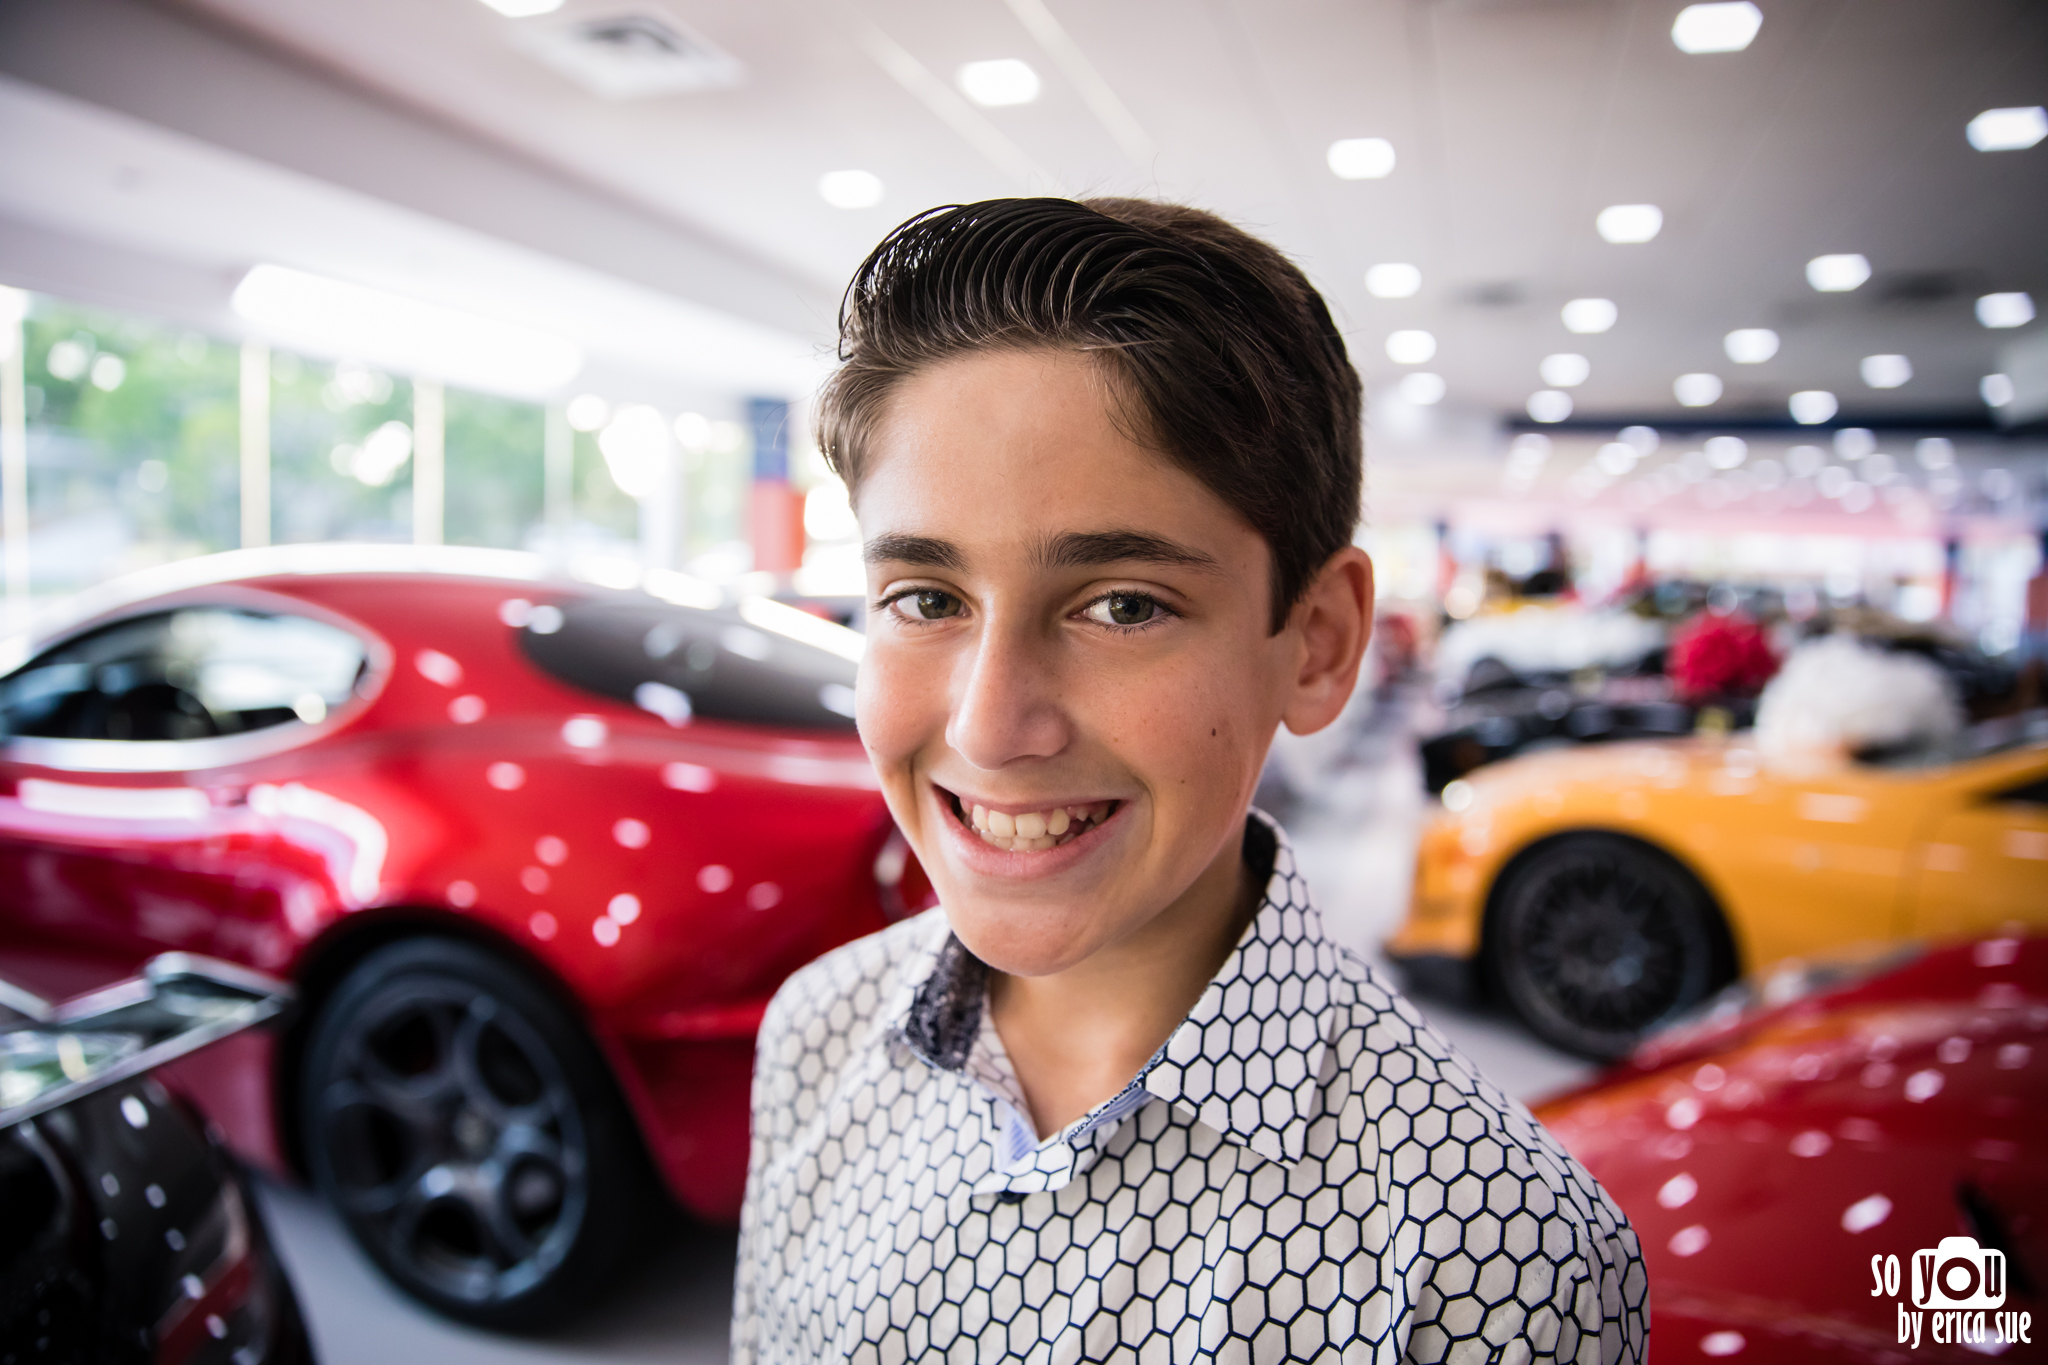 so-you-by-erica-sue-mitzvah-photographer-collection-luxury-car-ft-lauderdale-5034.jpg